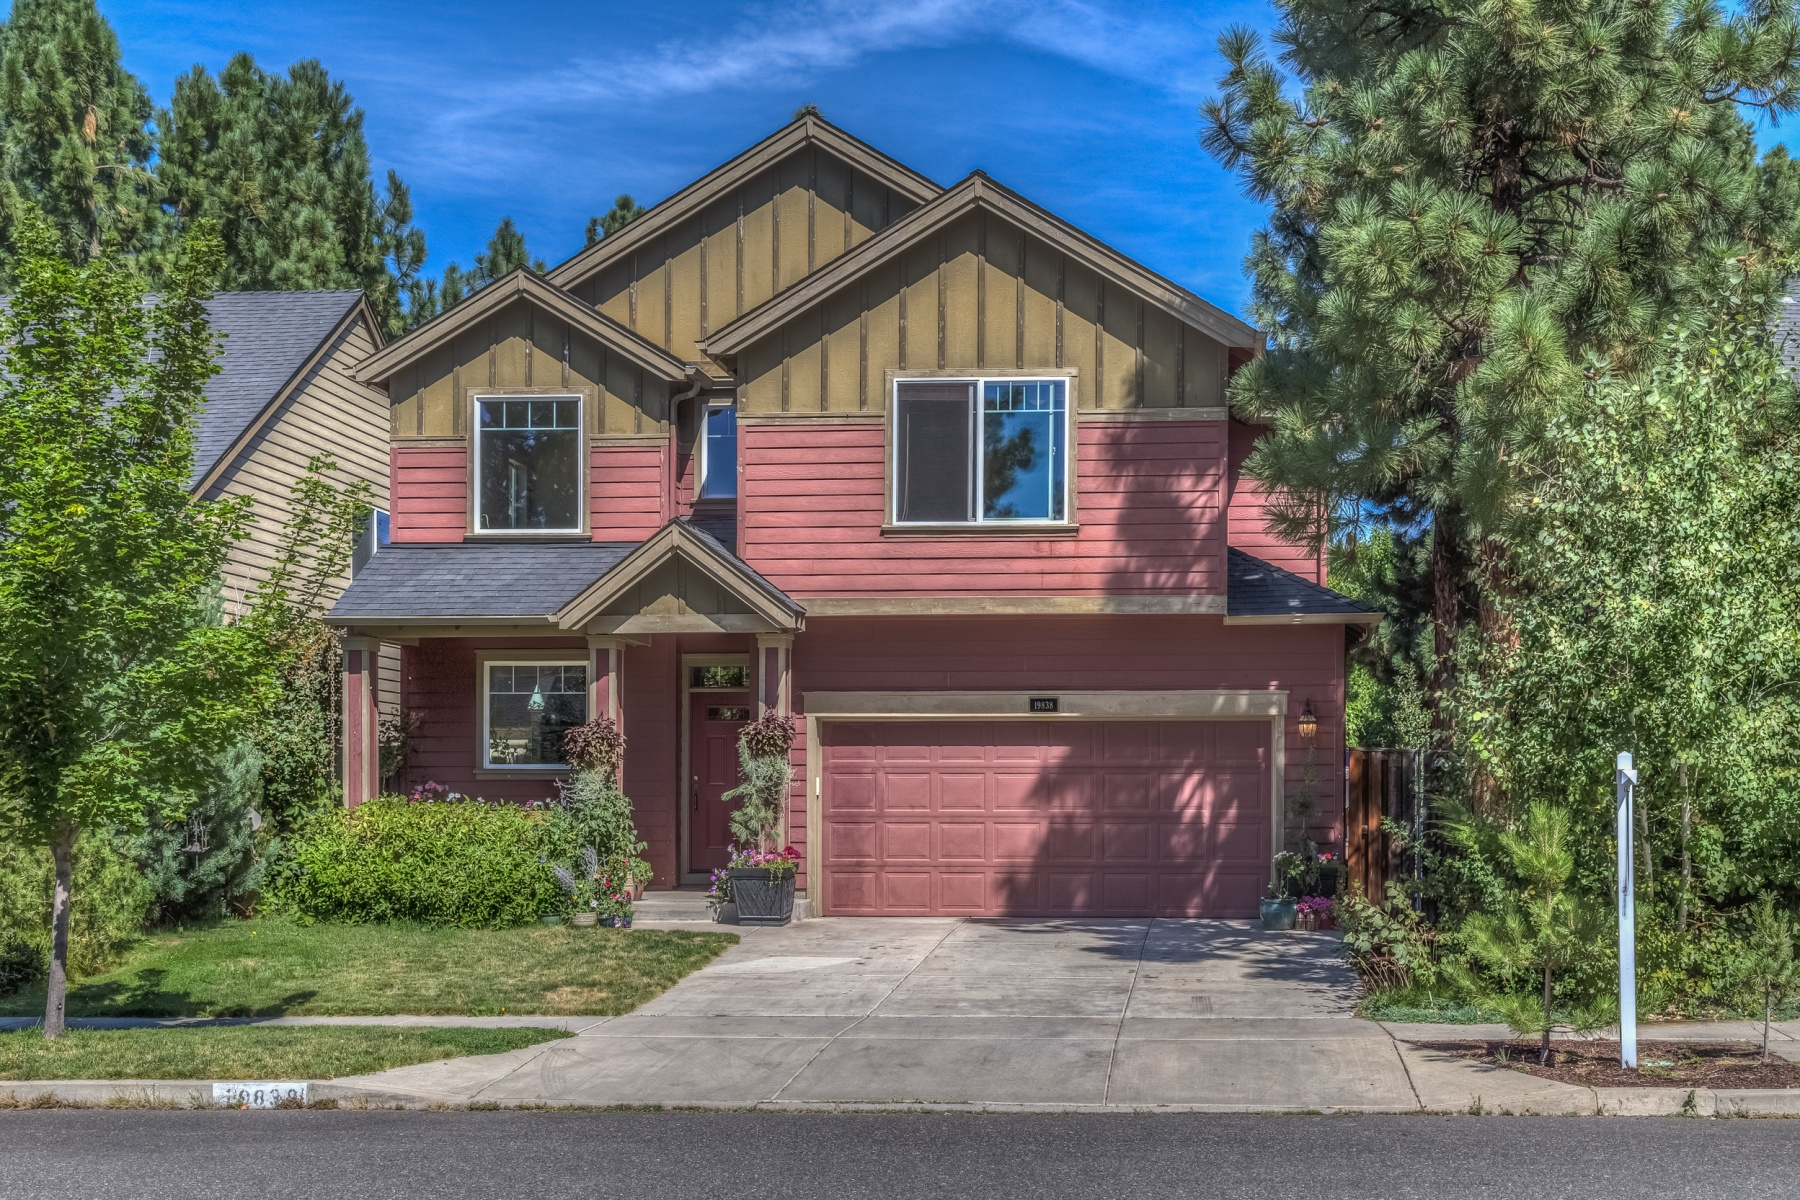 Single Family Home for Sale at 19838 Galileo Avenue, BEND Bend, Oregon, 97702 United States